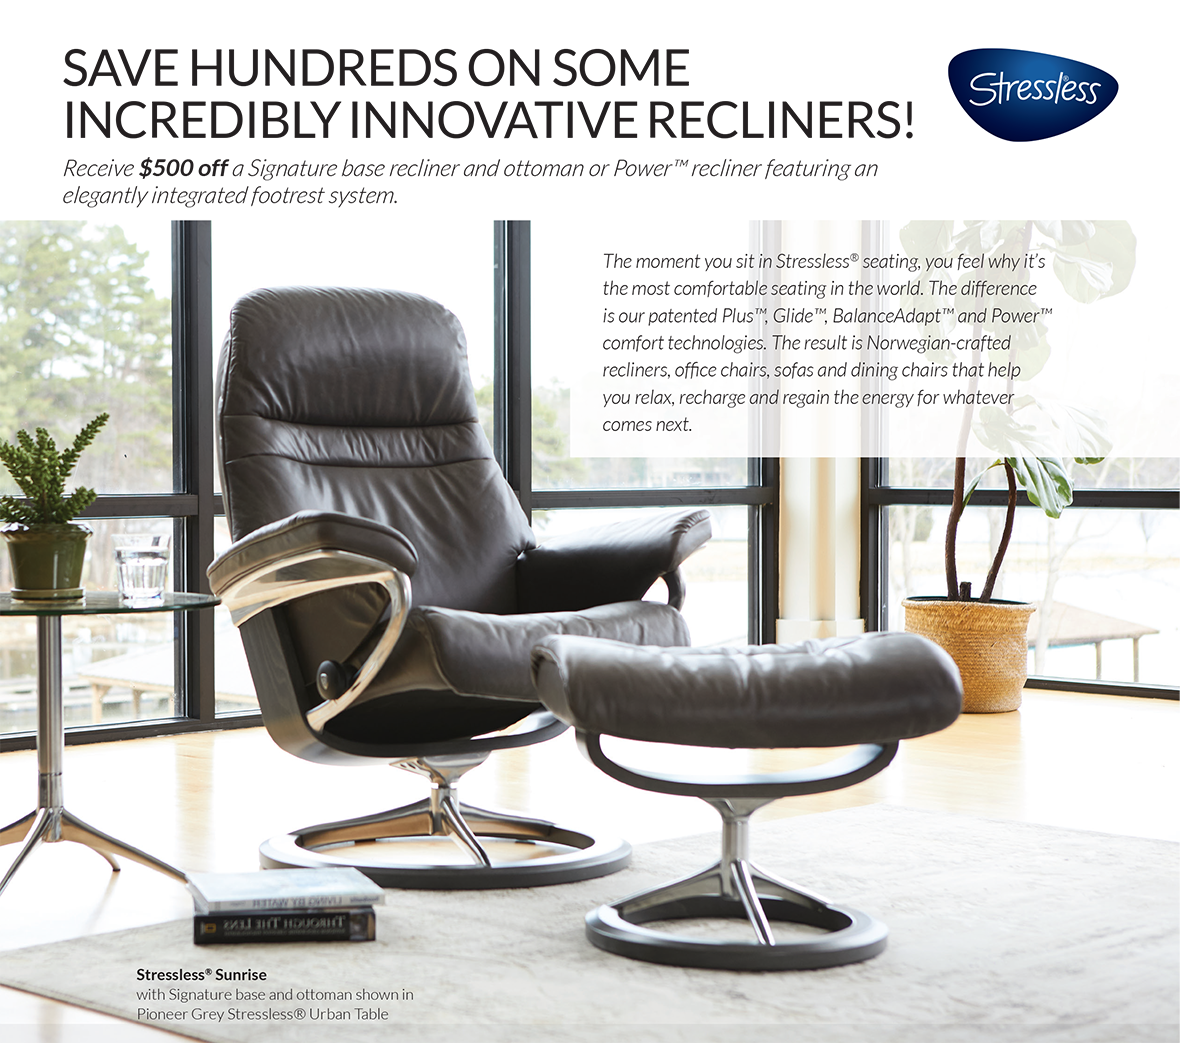 Stressless Recliners Spring Sale